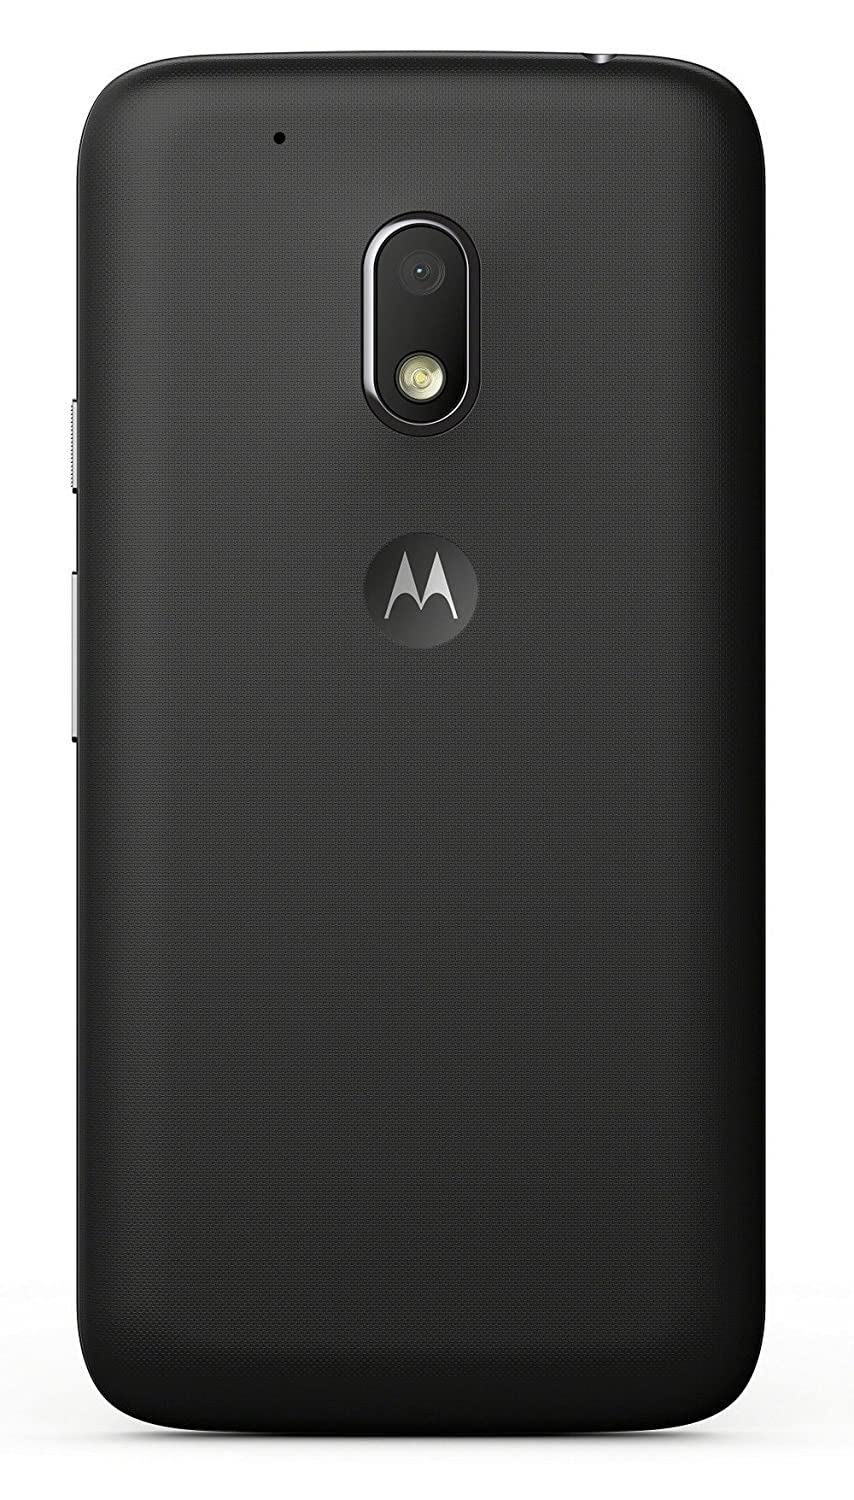 c85f854b13e2 Moto G4 Play Price  Buy Moto G4 Play Online at Best Price in India  –Amazon.in